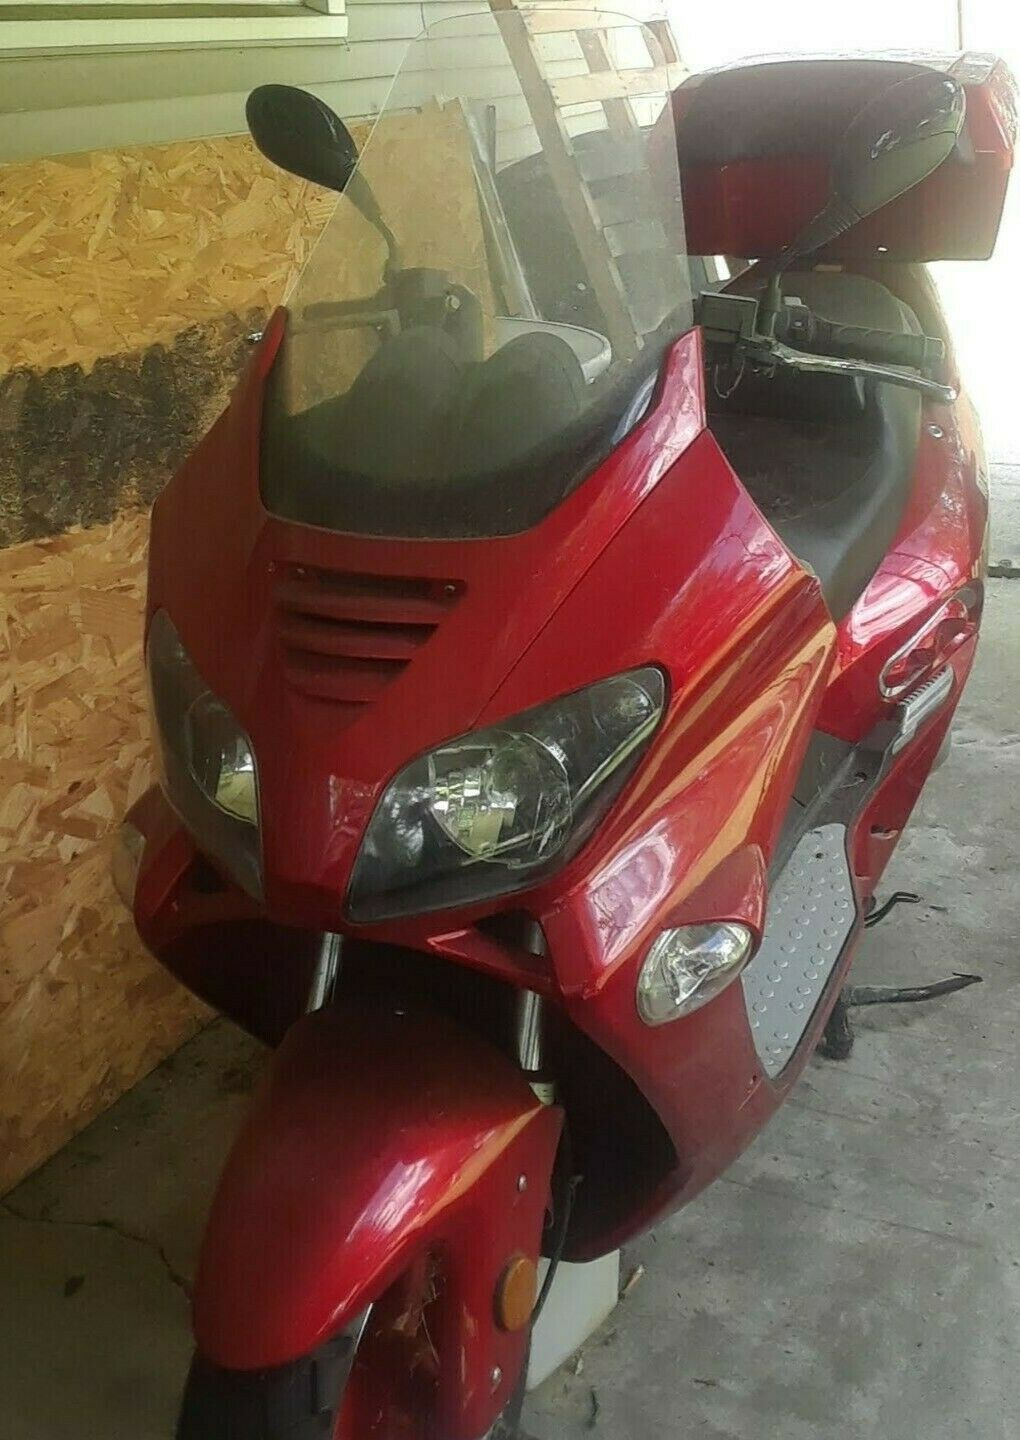 Used 250 CC 2008 JMST Roketa  (MC54 250B).  276 mils, needs minor work.